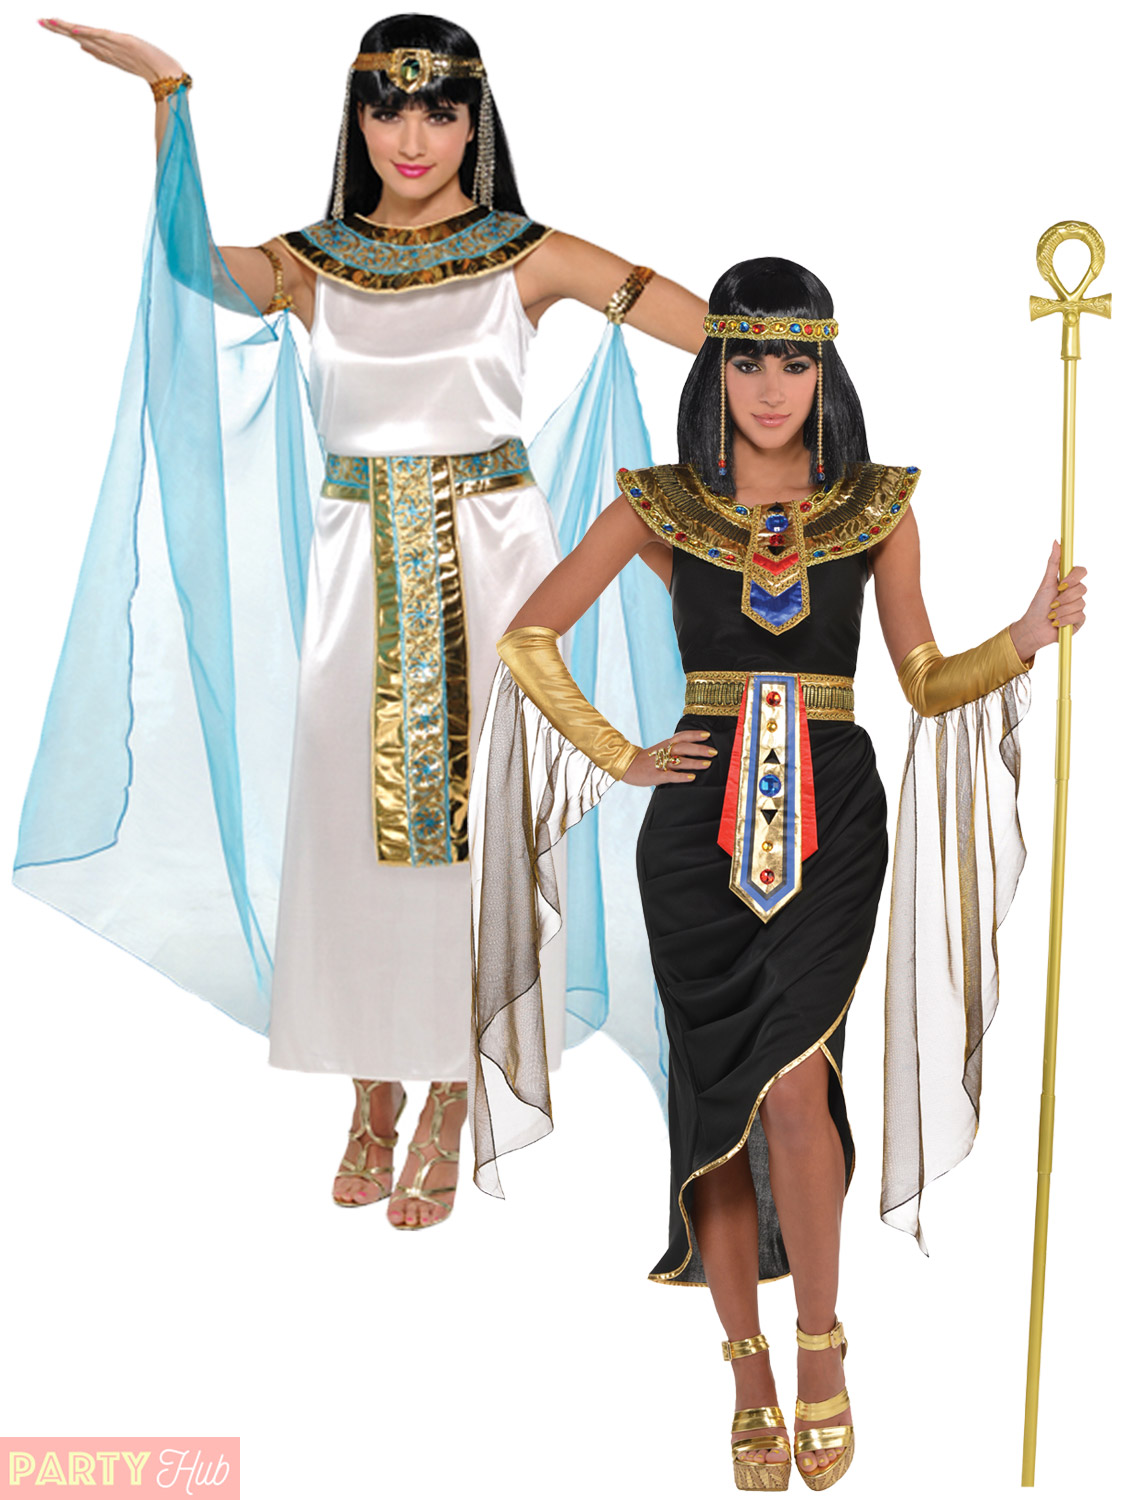 Cleopatra: A professional queen or a passionate woman?